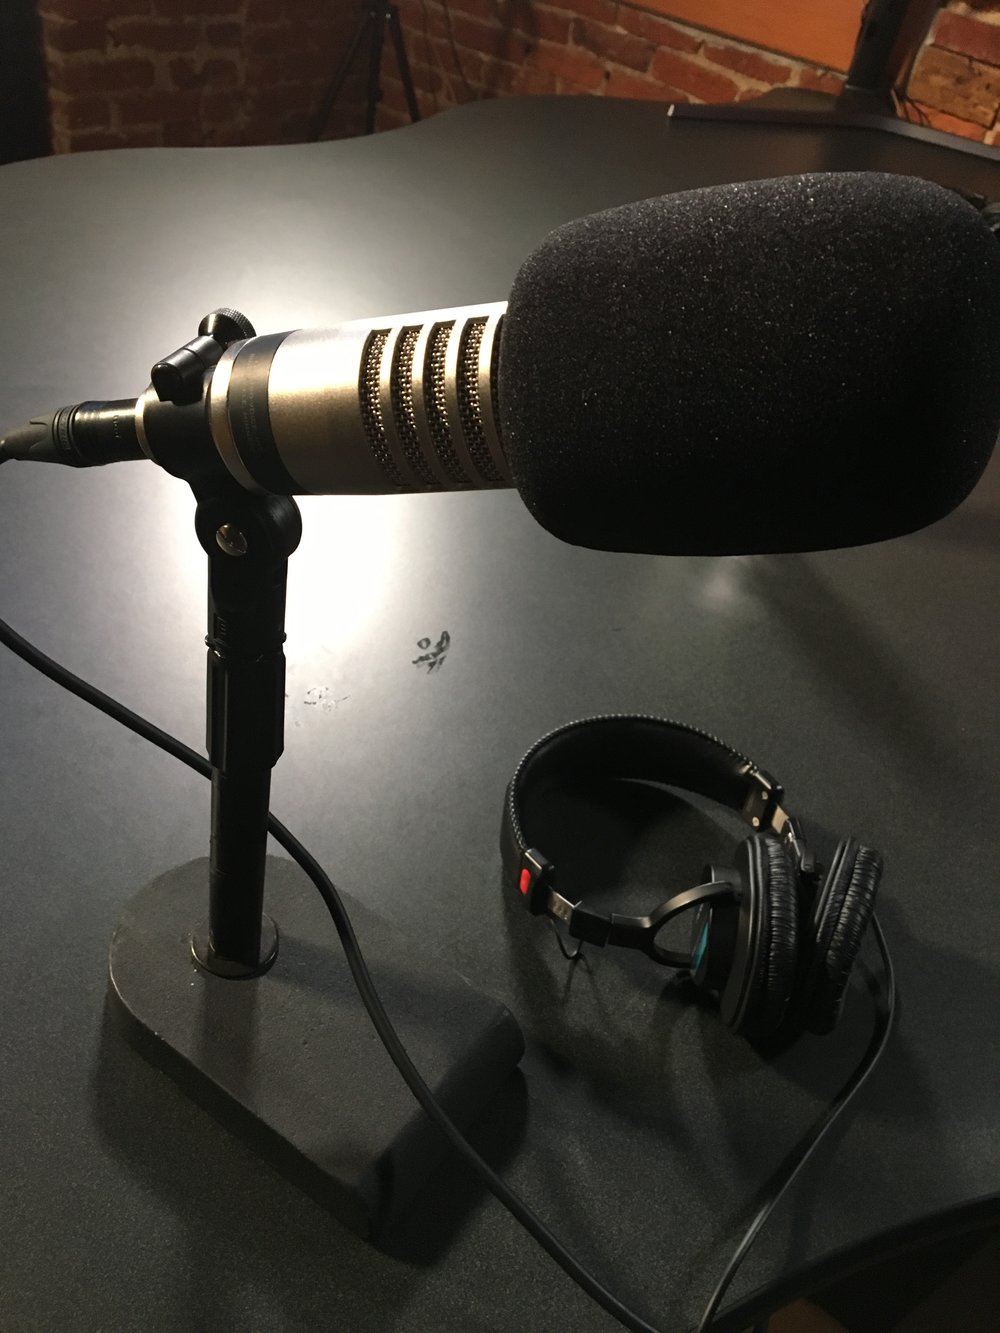 The thought of getting behind the microphone can paralyze us, at first.